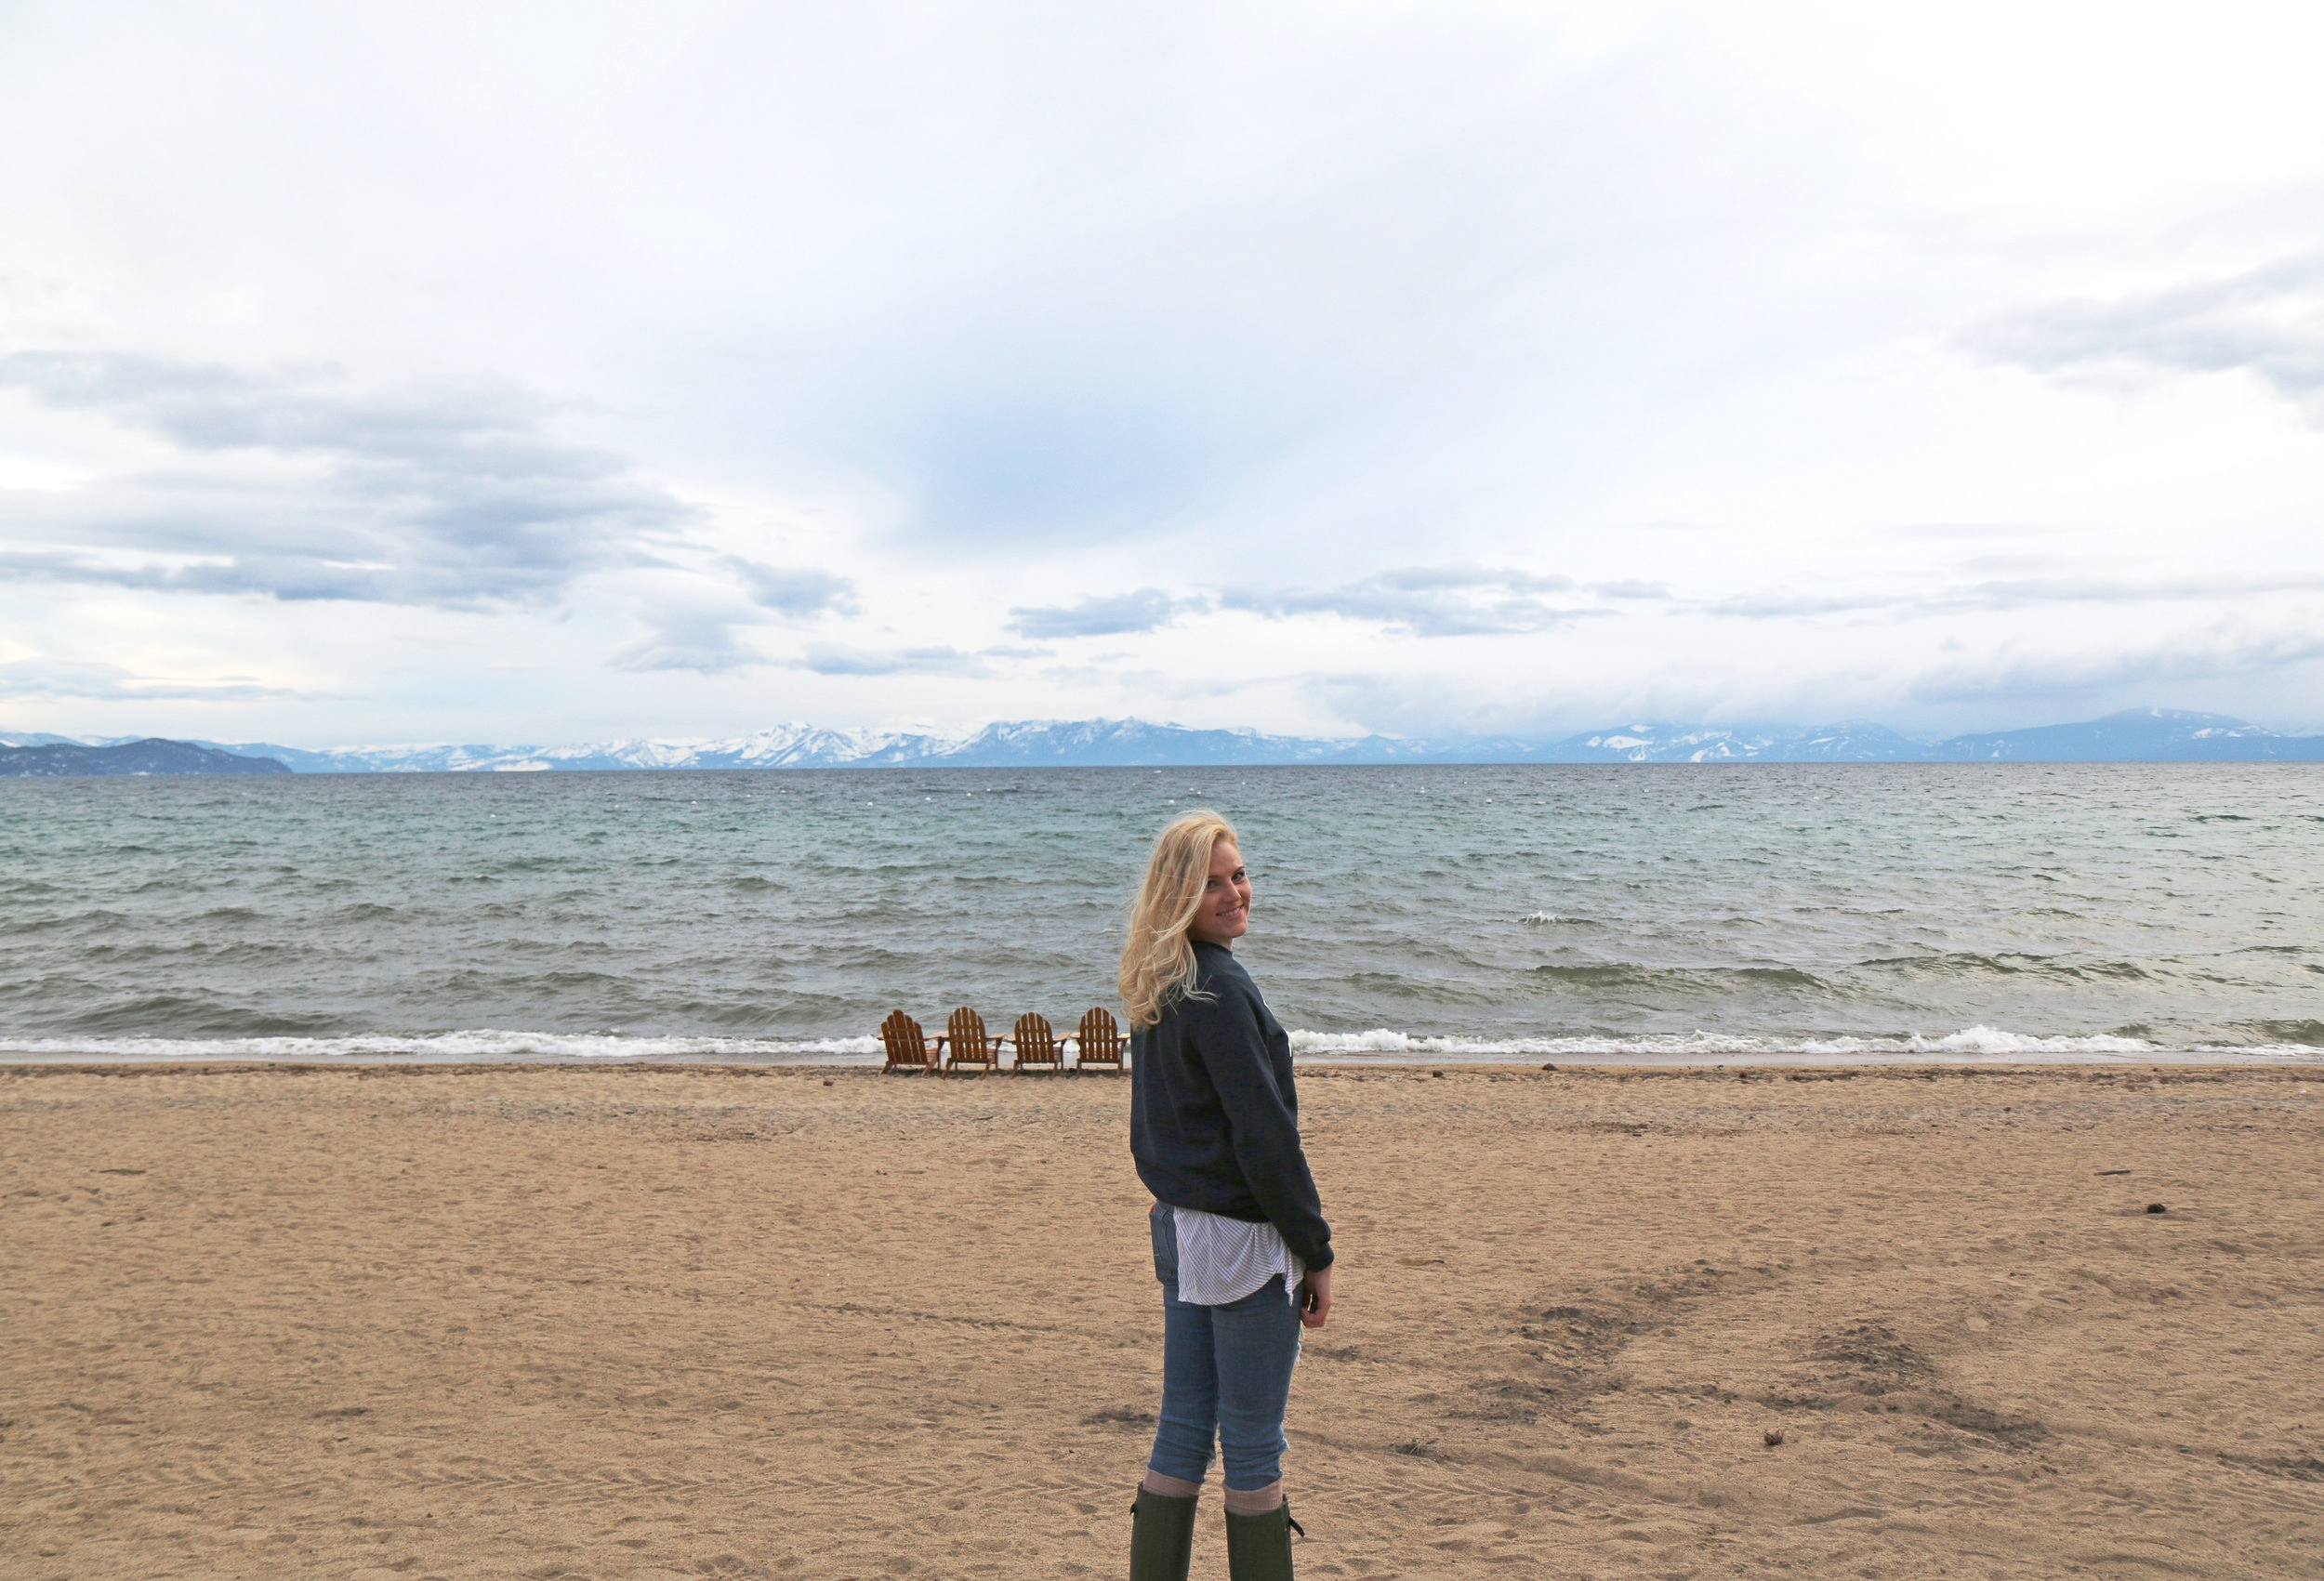 Lifestyle and travel blogger Bri Sul does Tahoe Lake near Reno, Nevada. An amazing solo trip to the Hyatt. On the beach and lake!